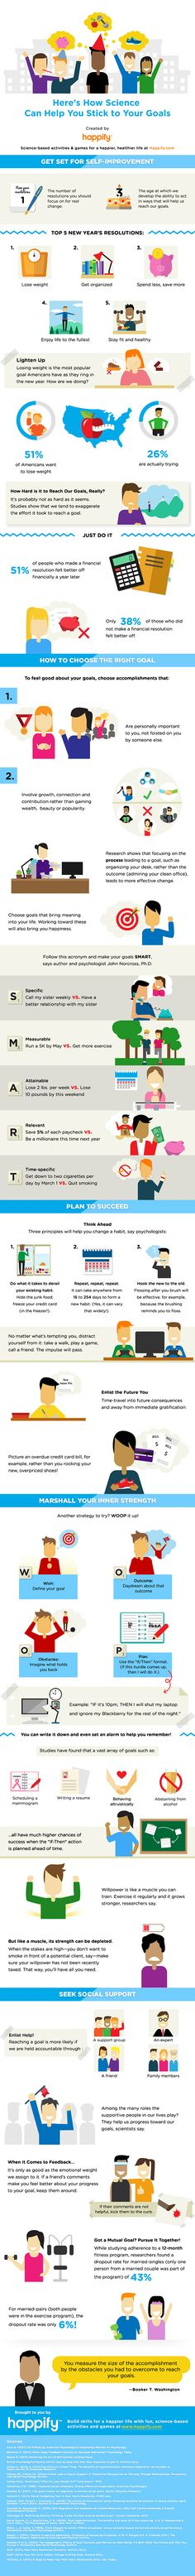 Check out this nifty infographic with everything you need to keep that resolution.